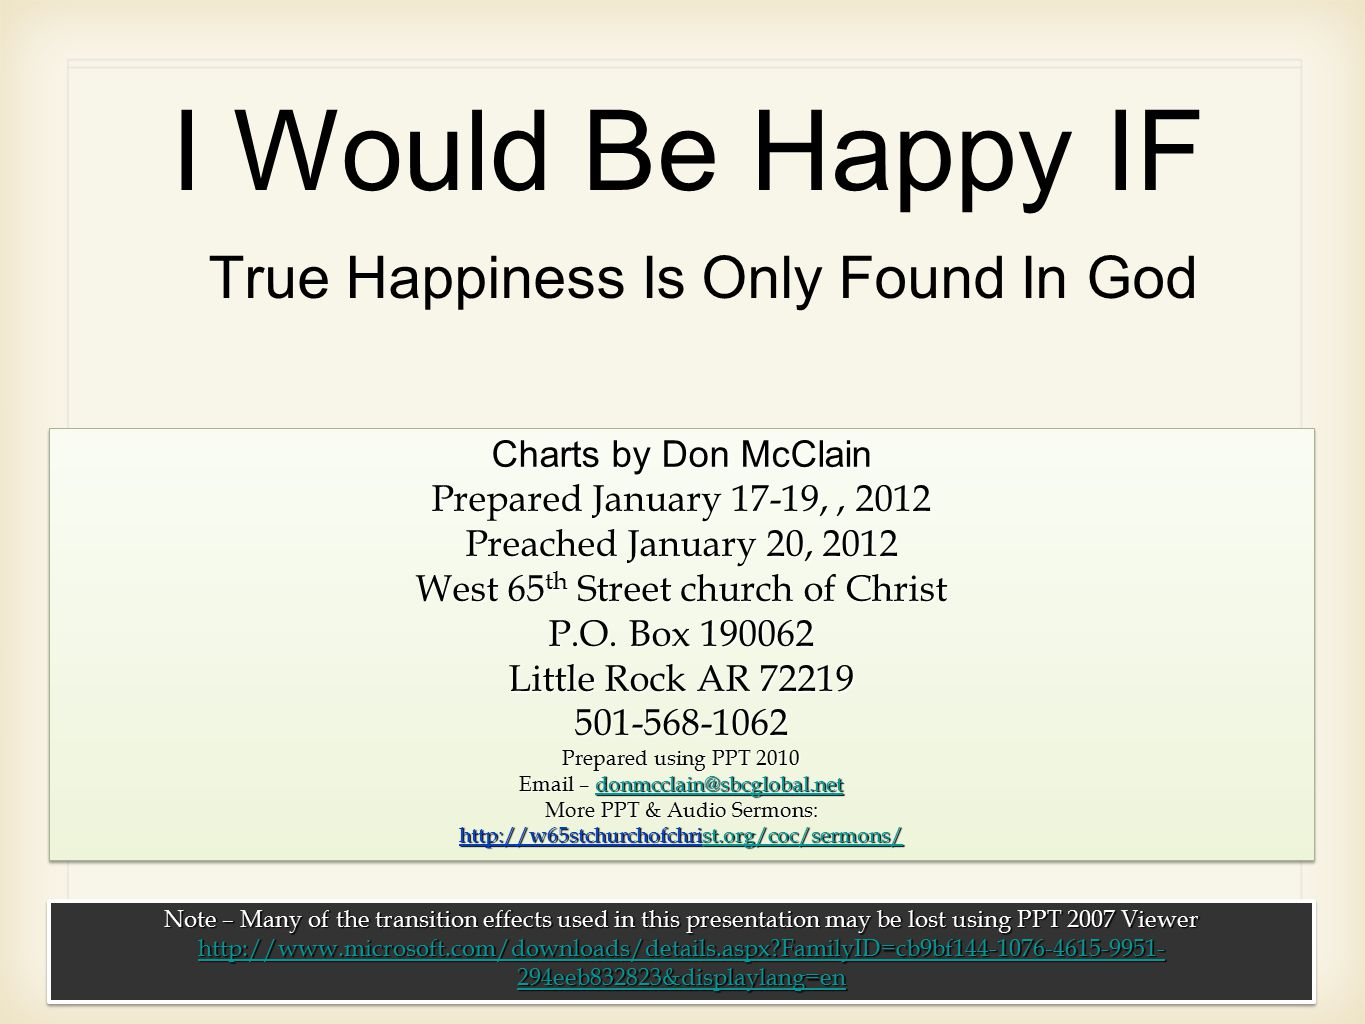 I Would Be Happy IF True Happiness Is Only Found In God